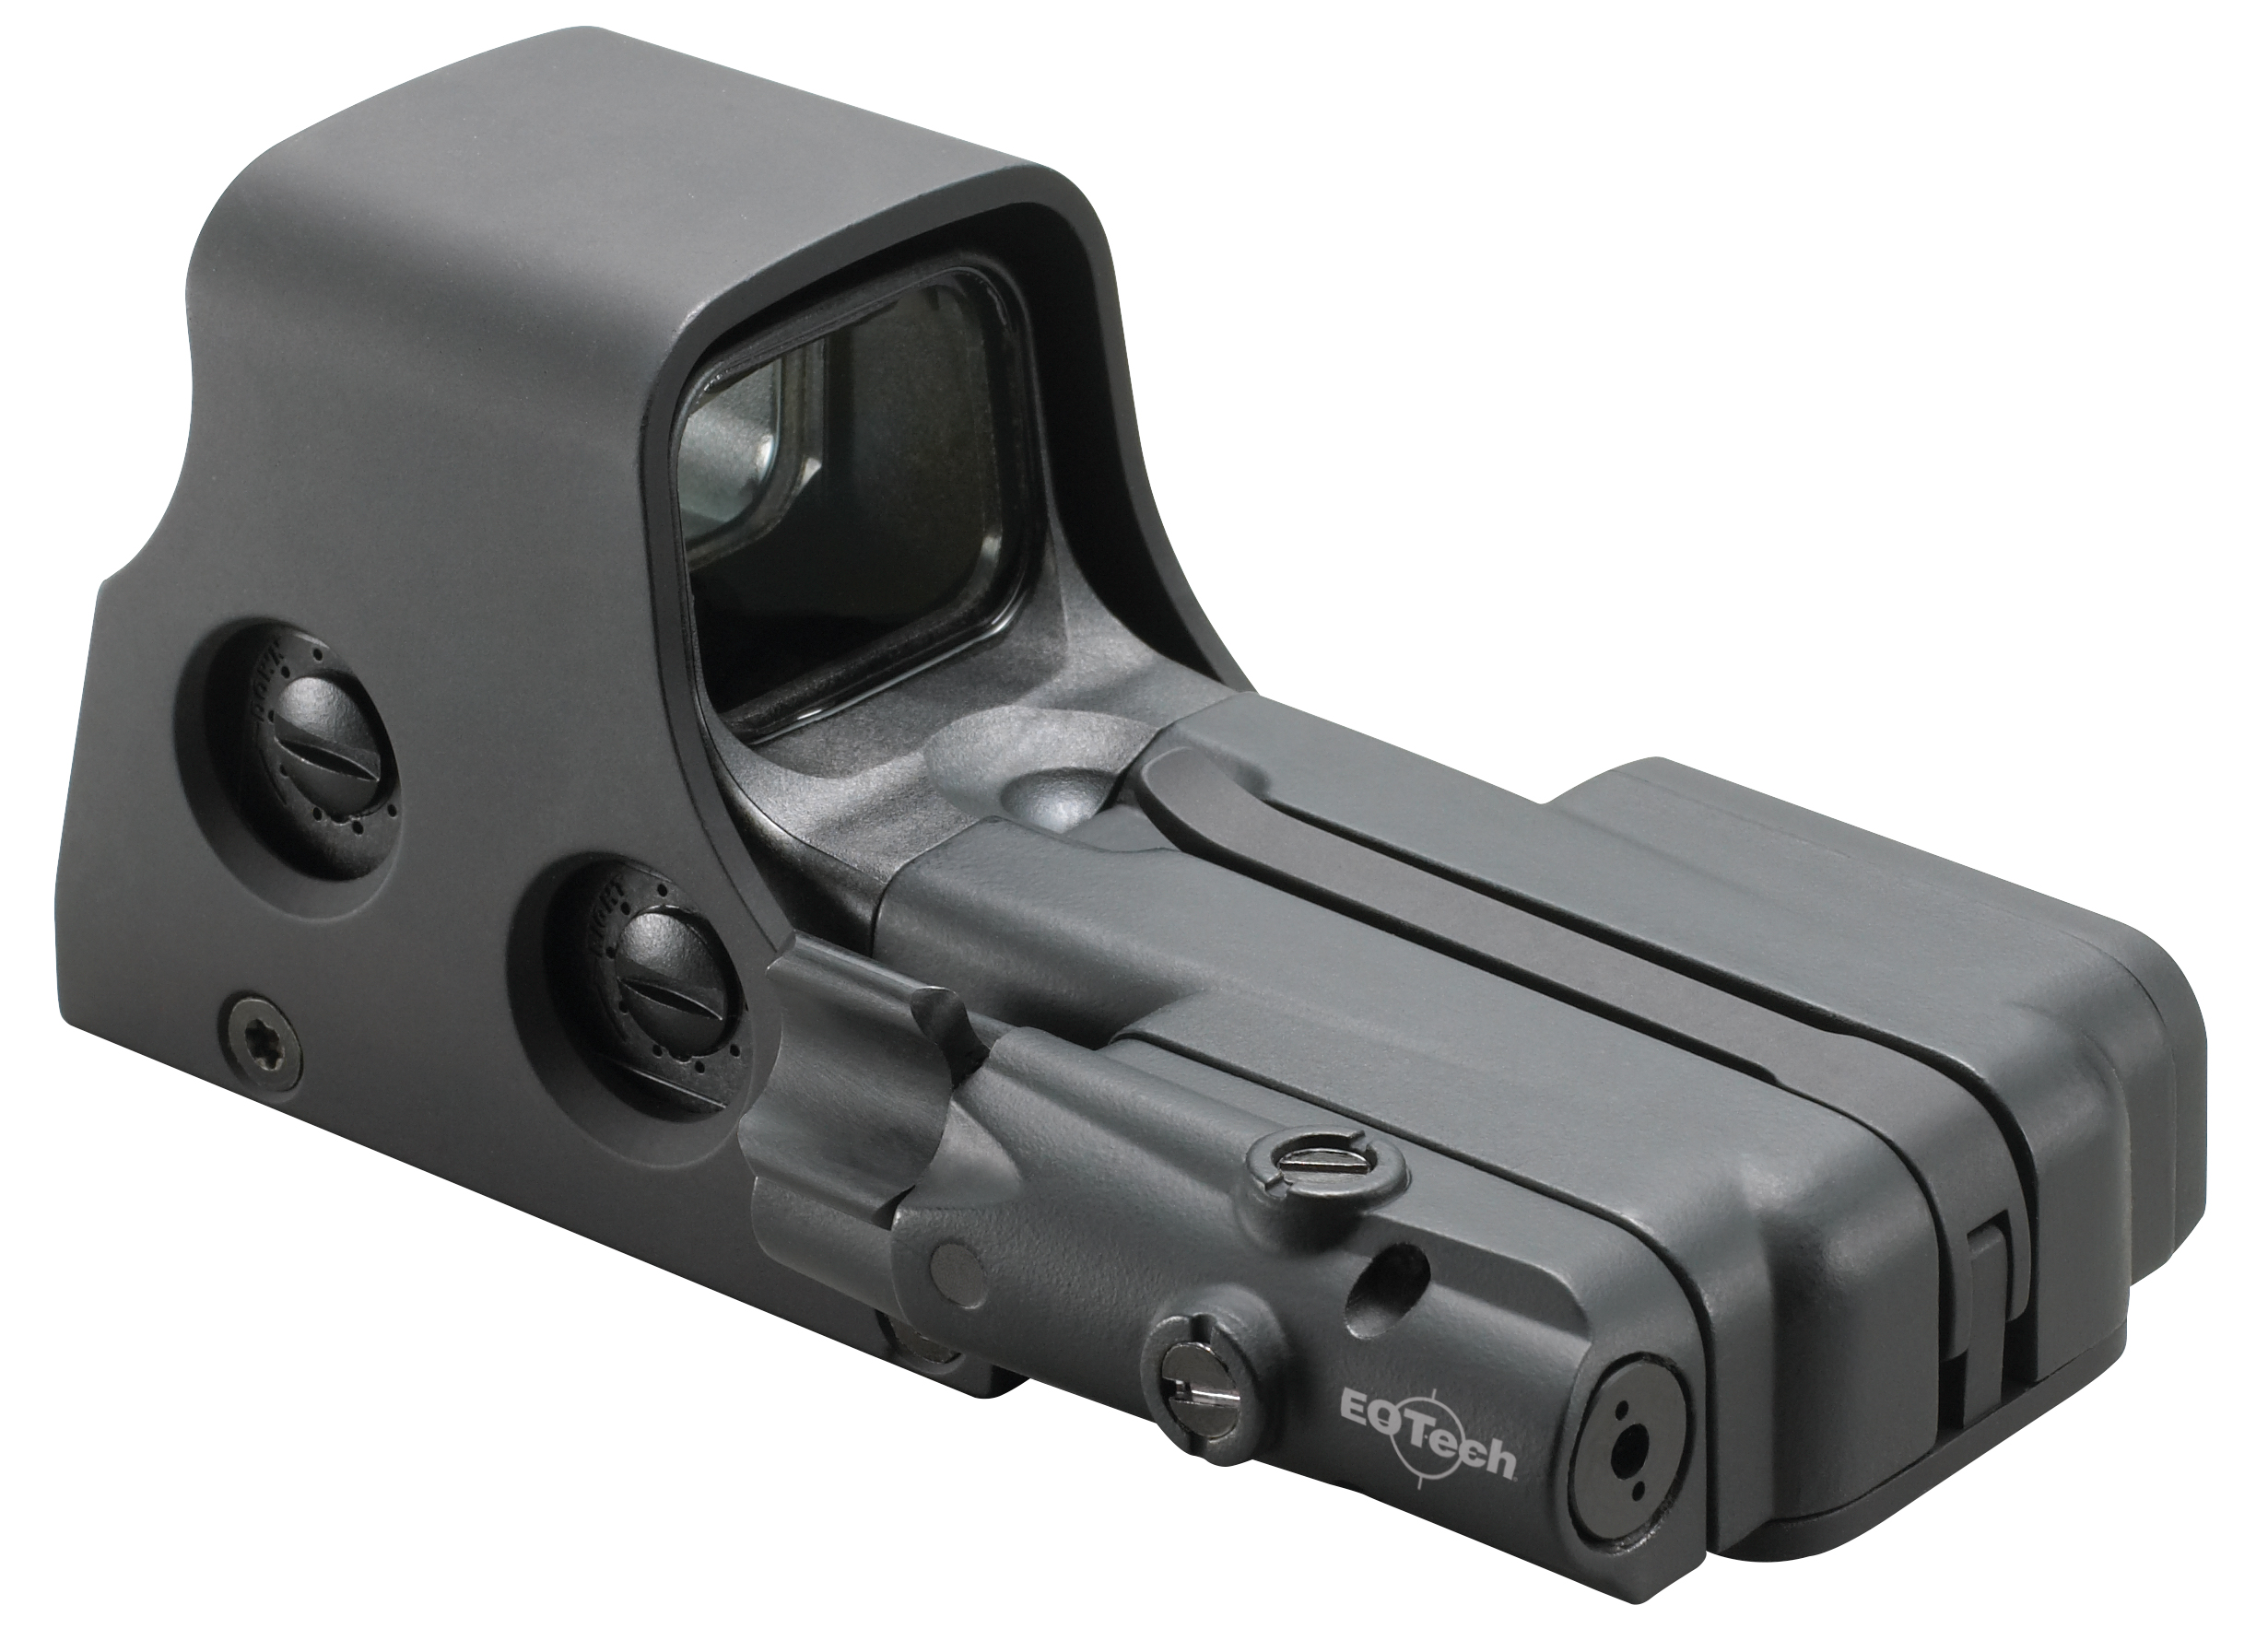 Eotech Laser Battery Cap For The 512 And 552 Holographic